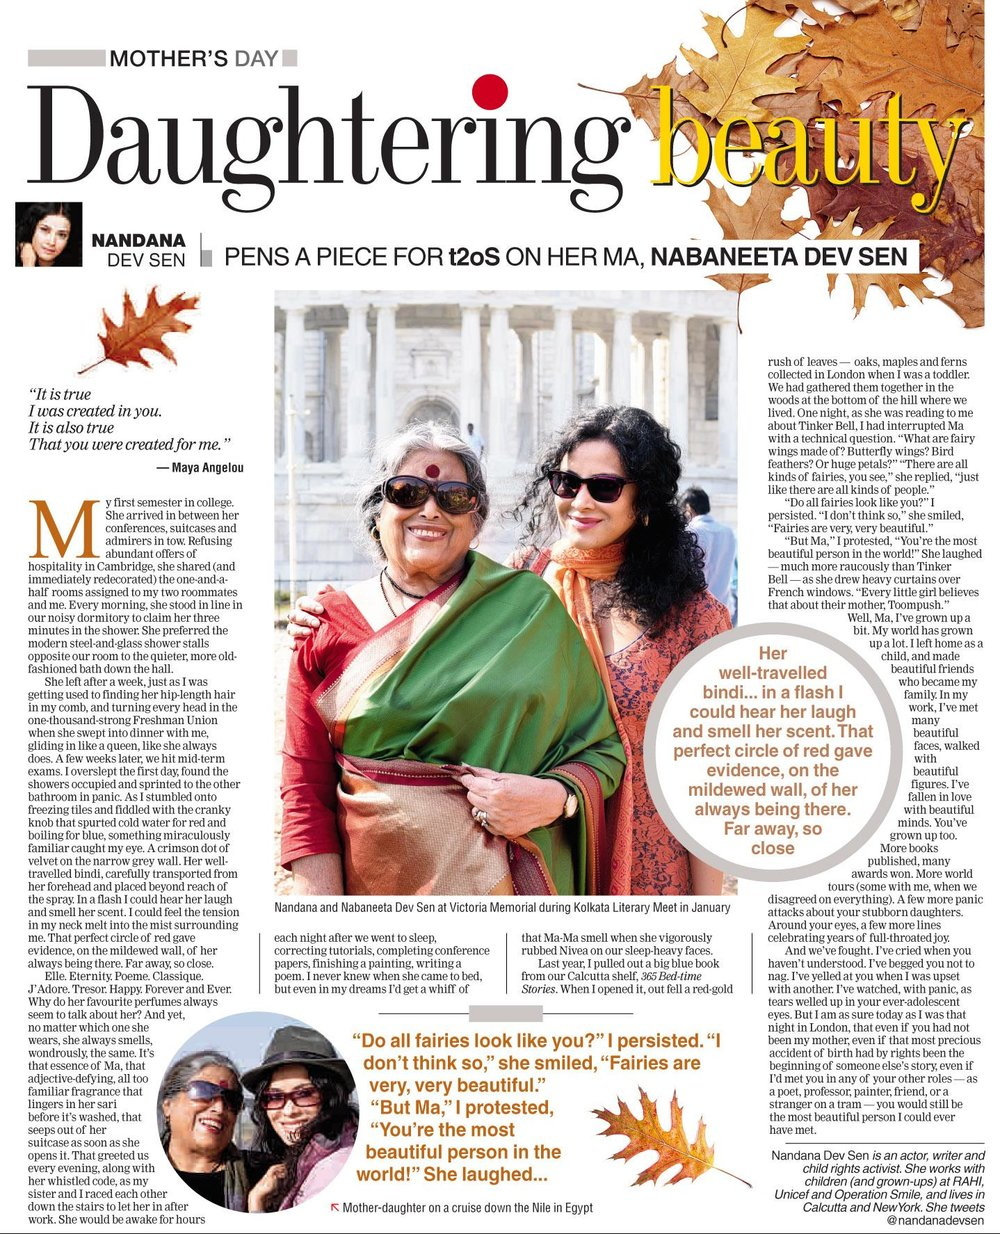 https://epaper.telegraphindia.com/paper/6-24-14@05@2017-1001.html   The Telegraph, May 14, 2017